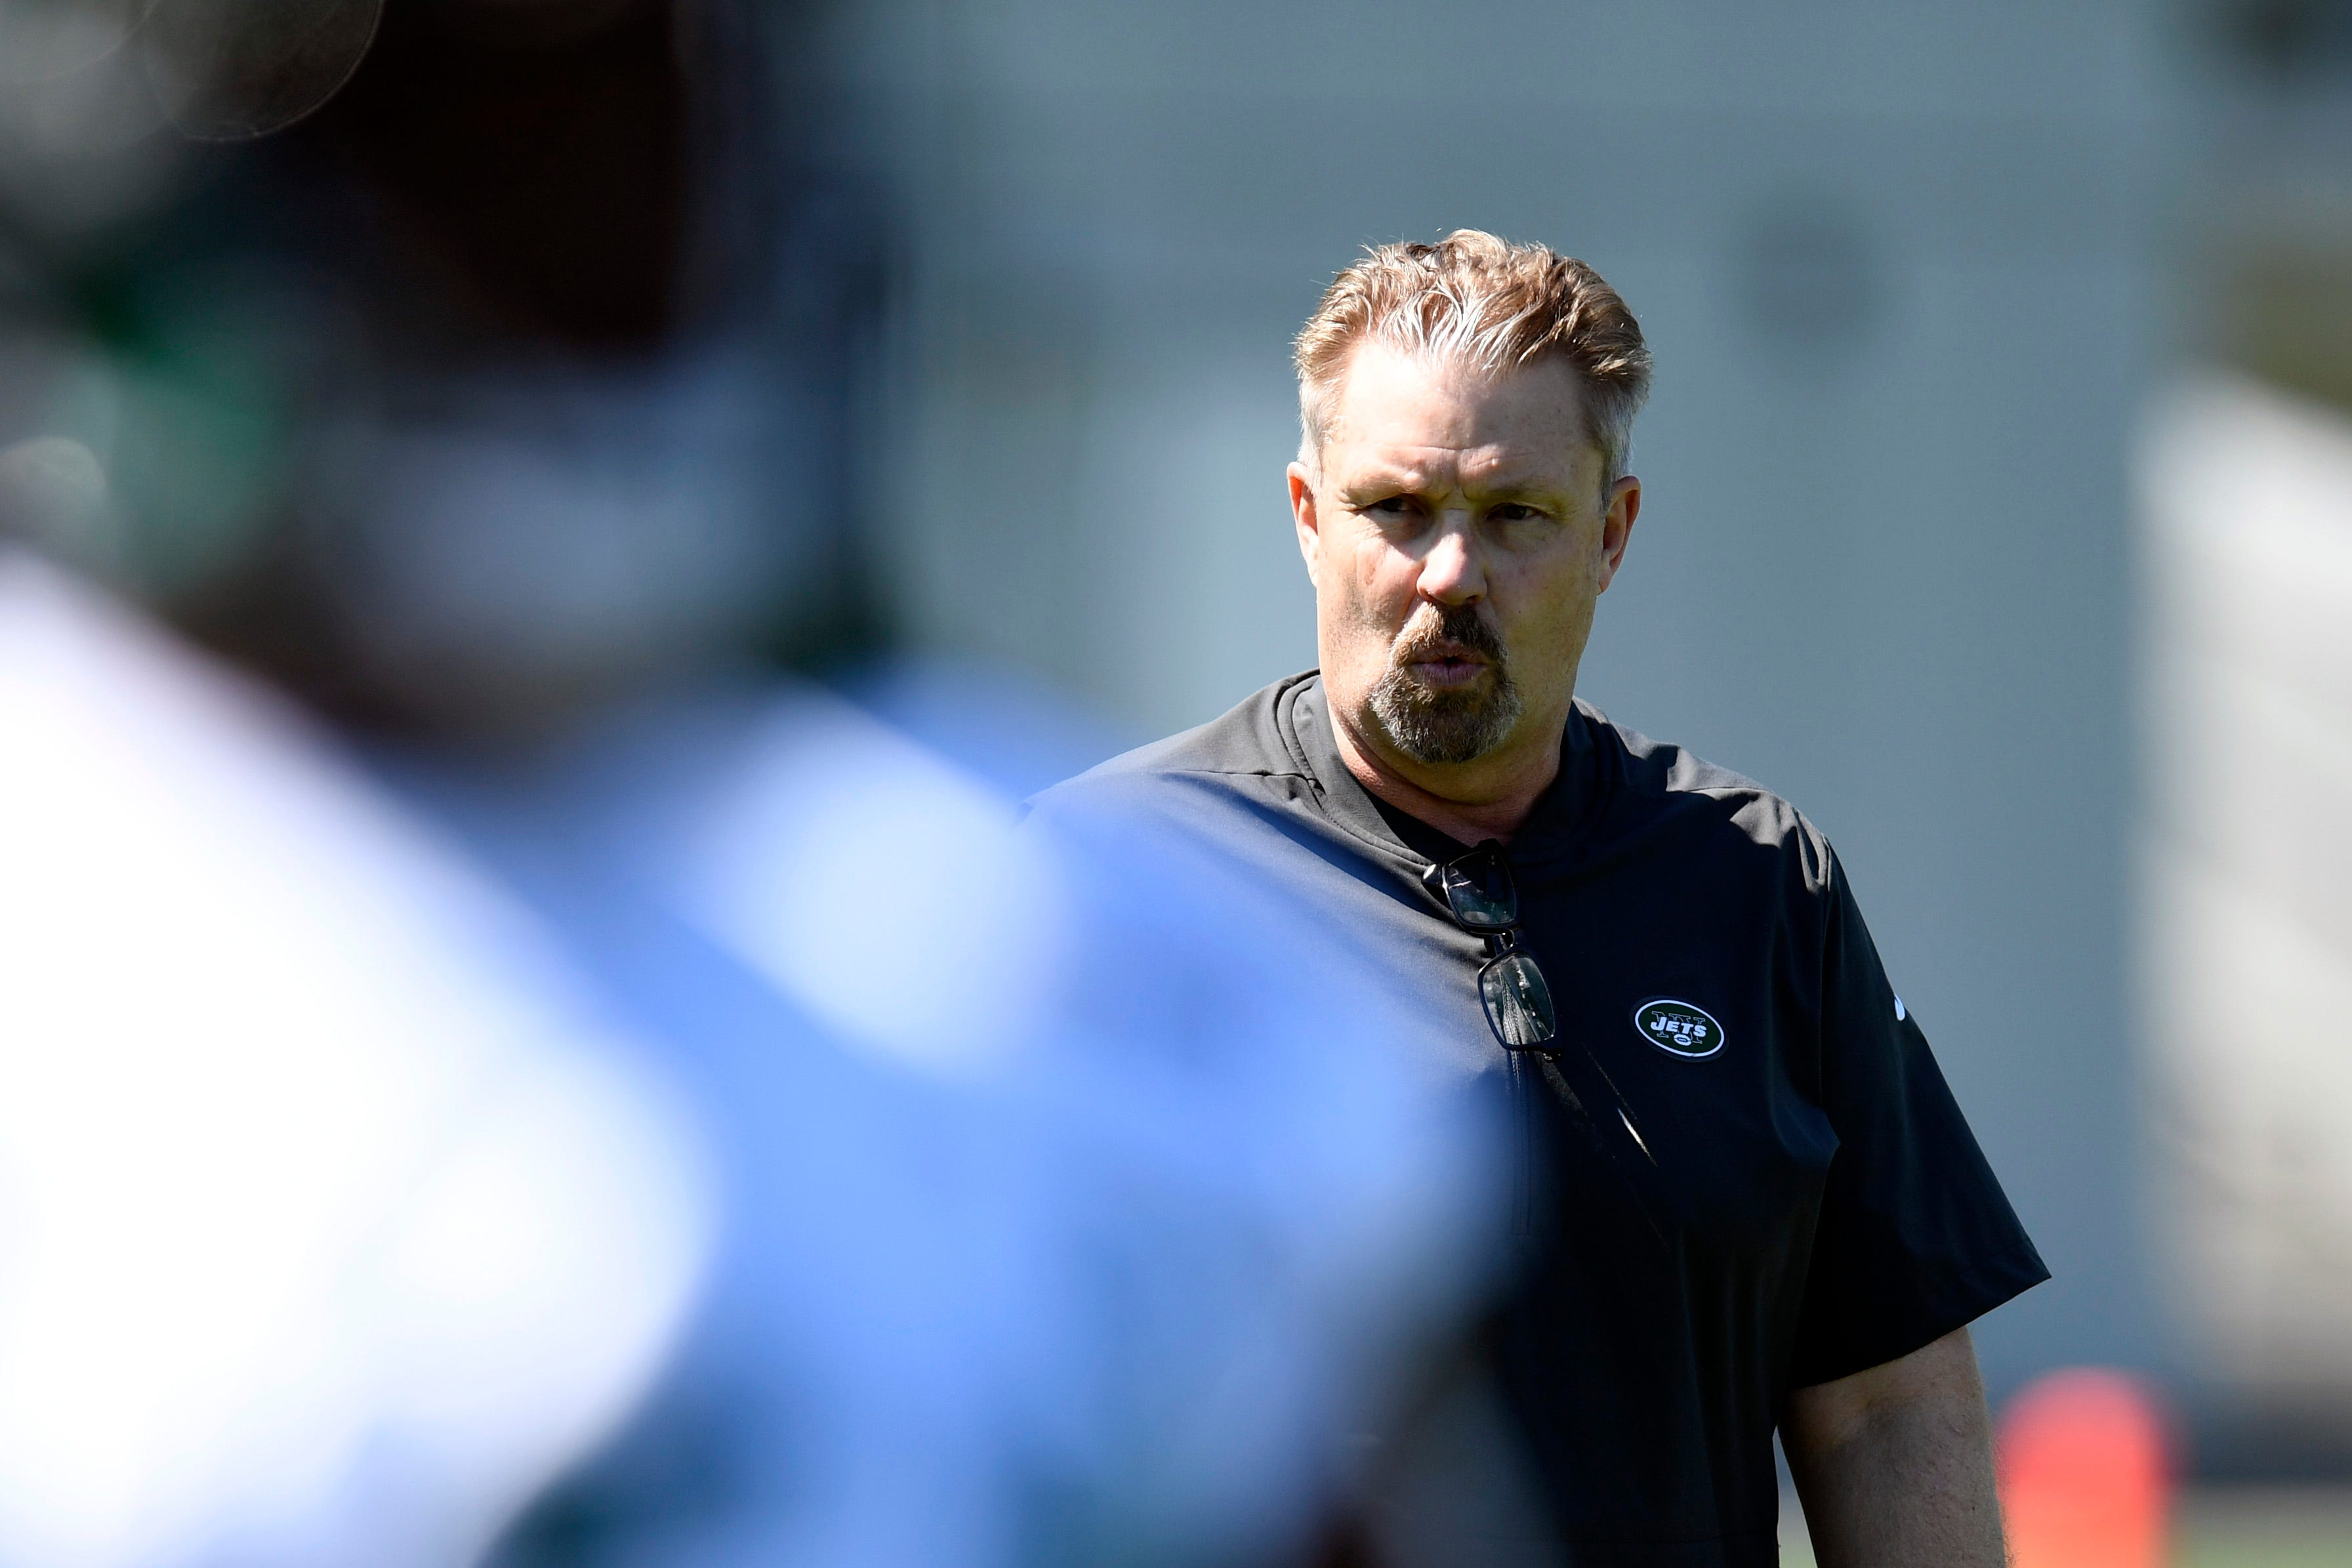 Jets assistant coaches Gregg Williams, Joe Vitt don't want to talk about Bountygate